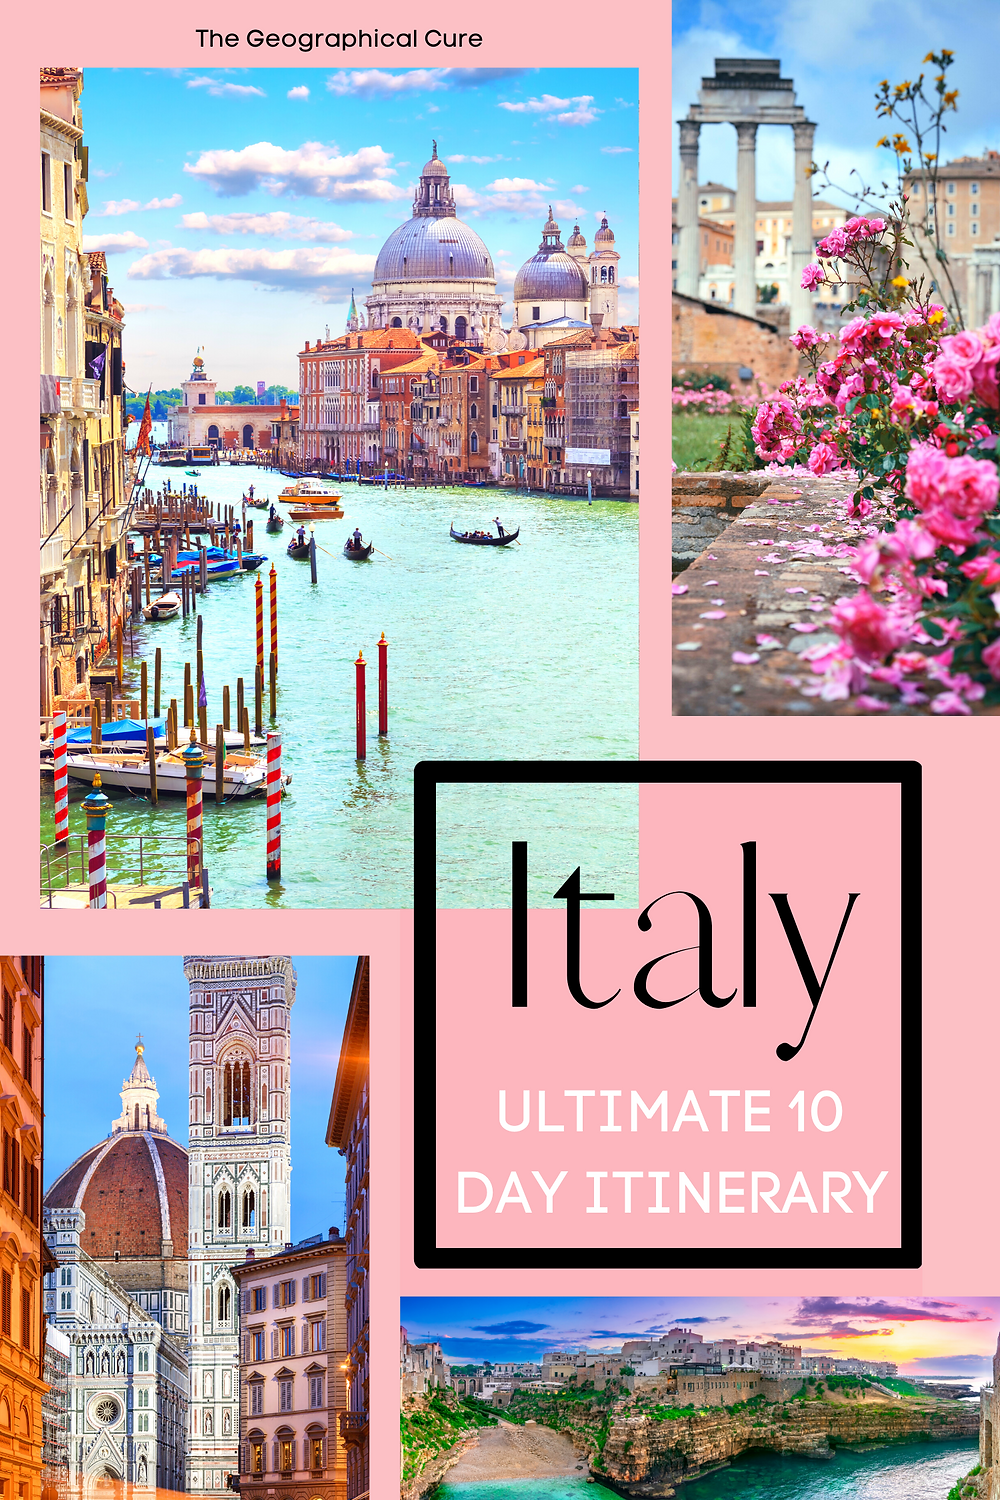 The Best of Italy in 10 Days